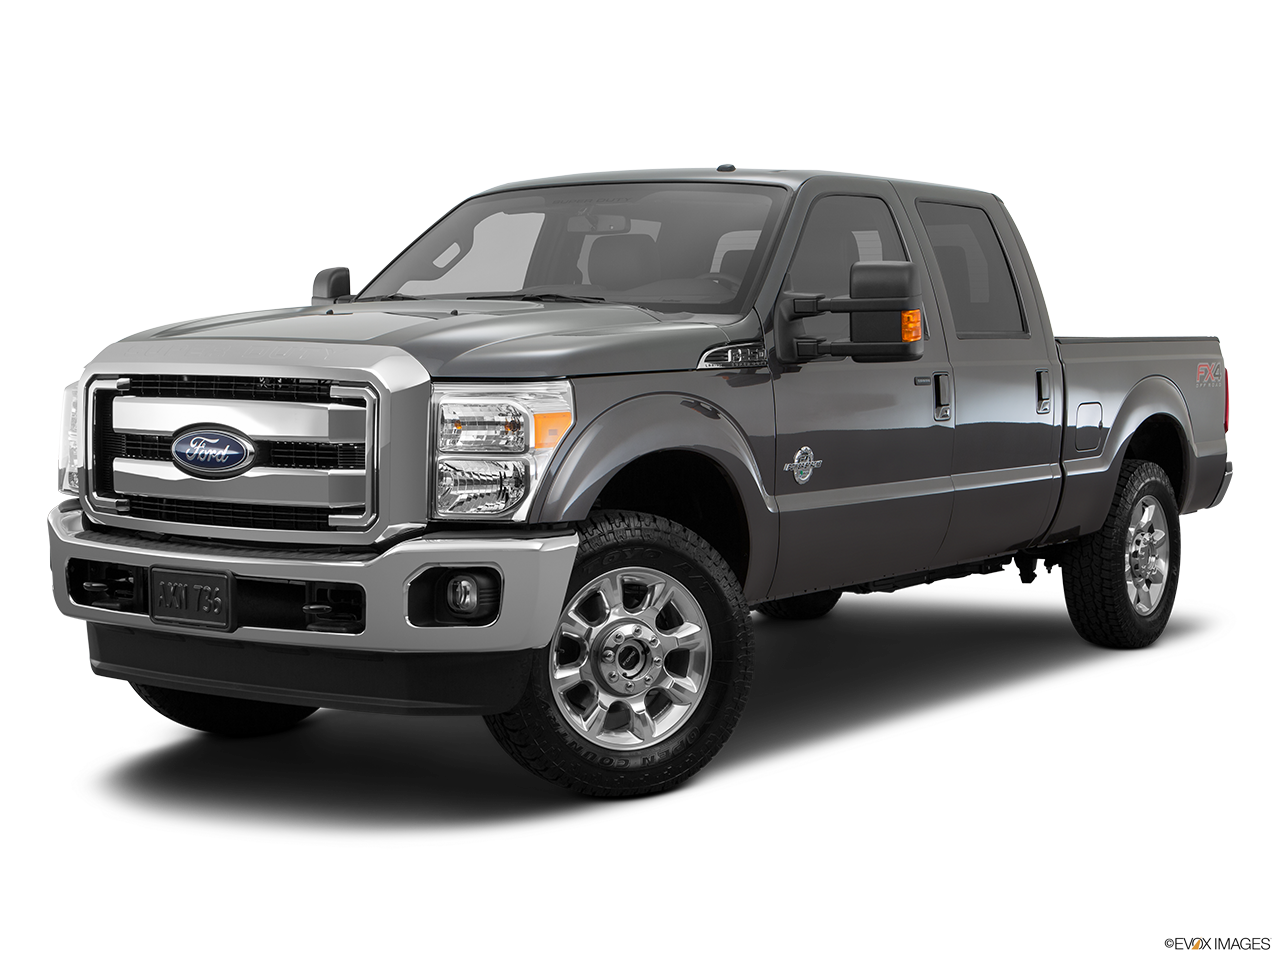 Test Drive A 2016 Ford F-250 SD at All Star Ford Palestine in Palestine